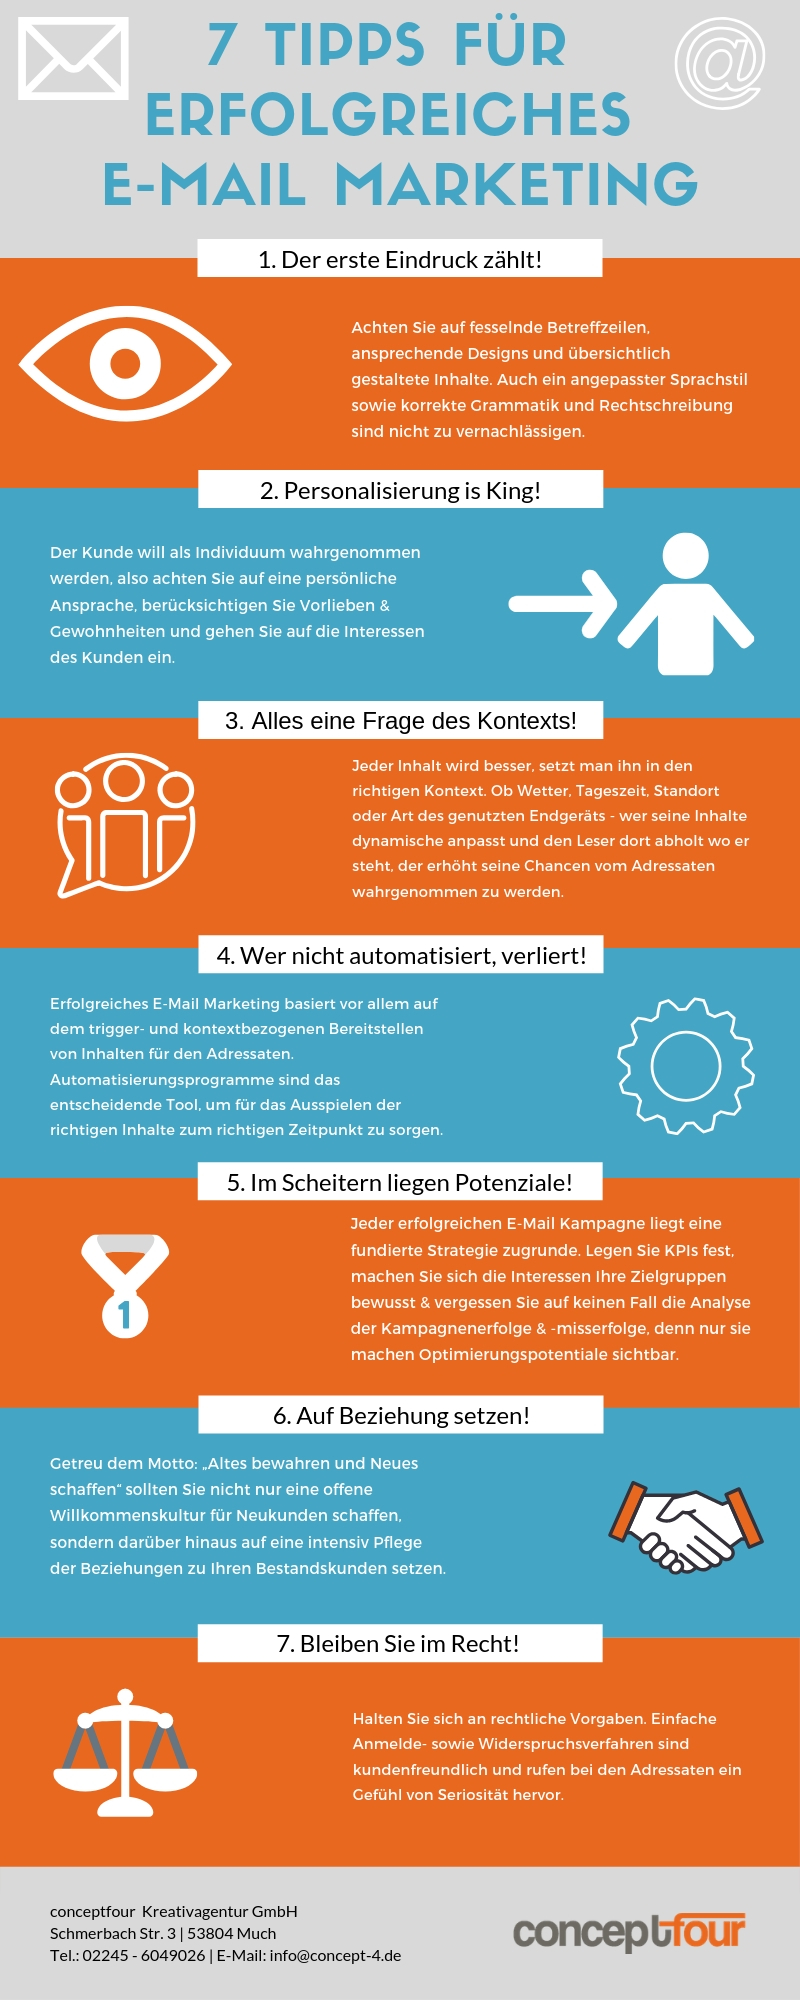 Infografik 7 Tipps E-Mail Marketing